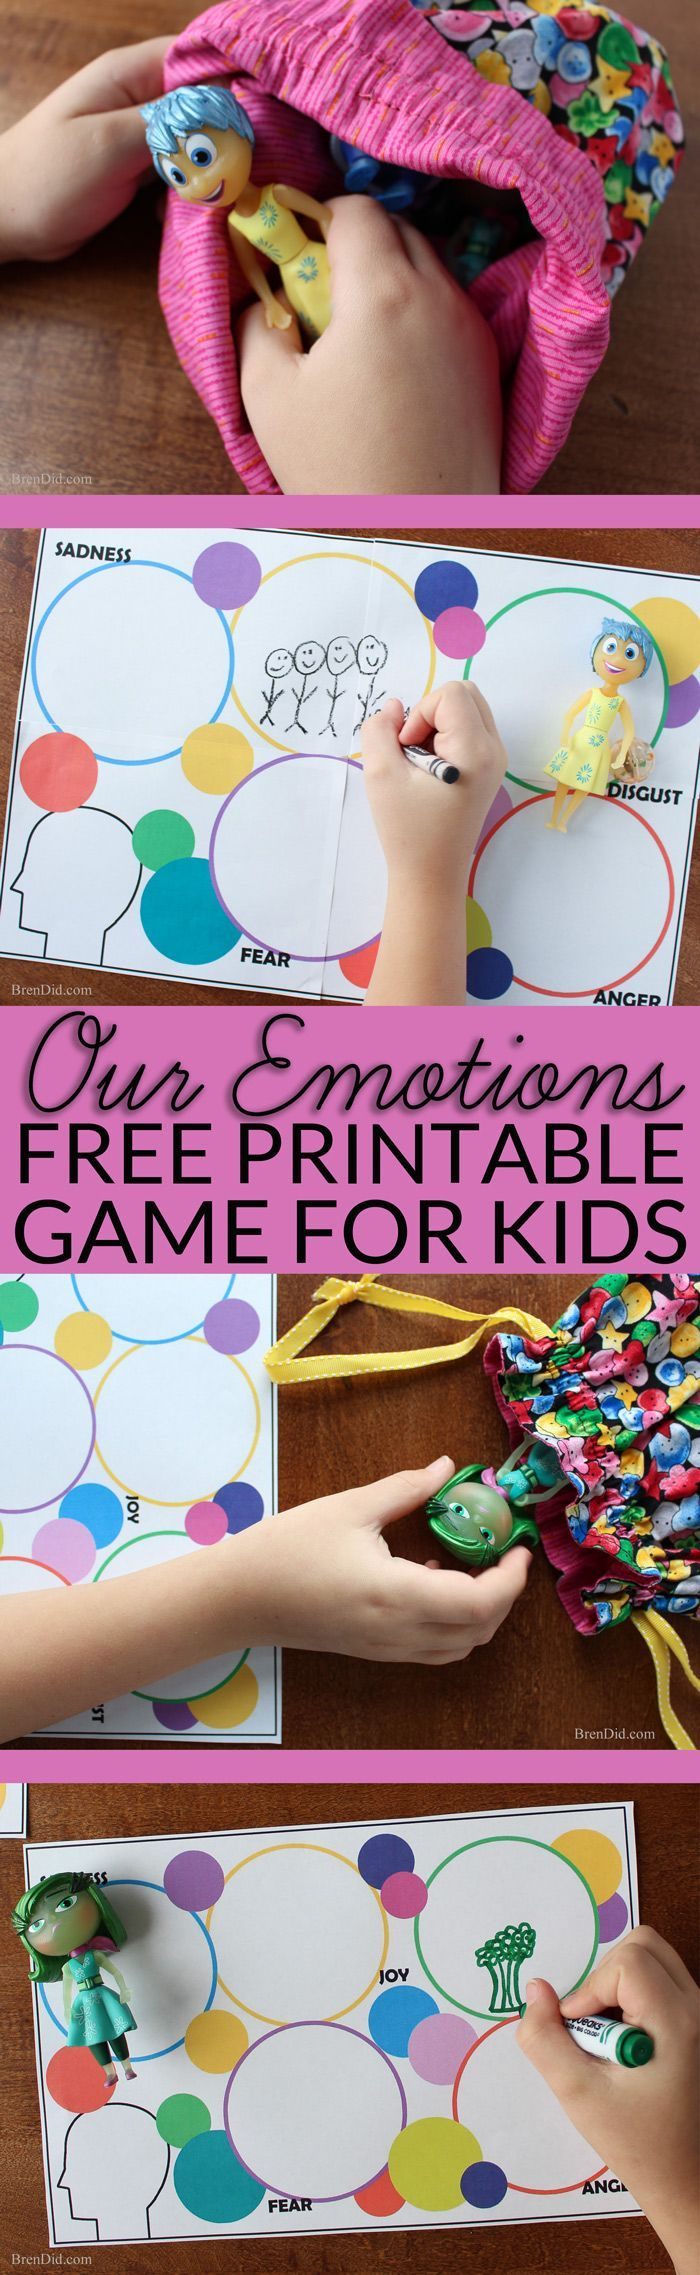 Free Printable Inside Out Emotions Game for